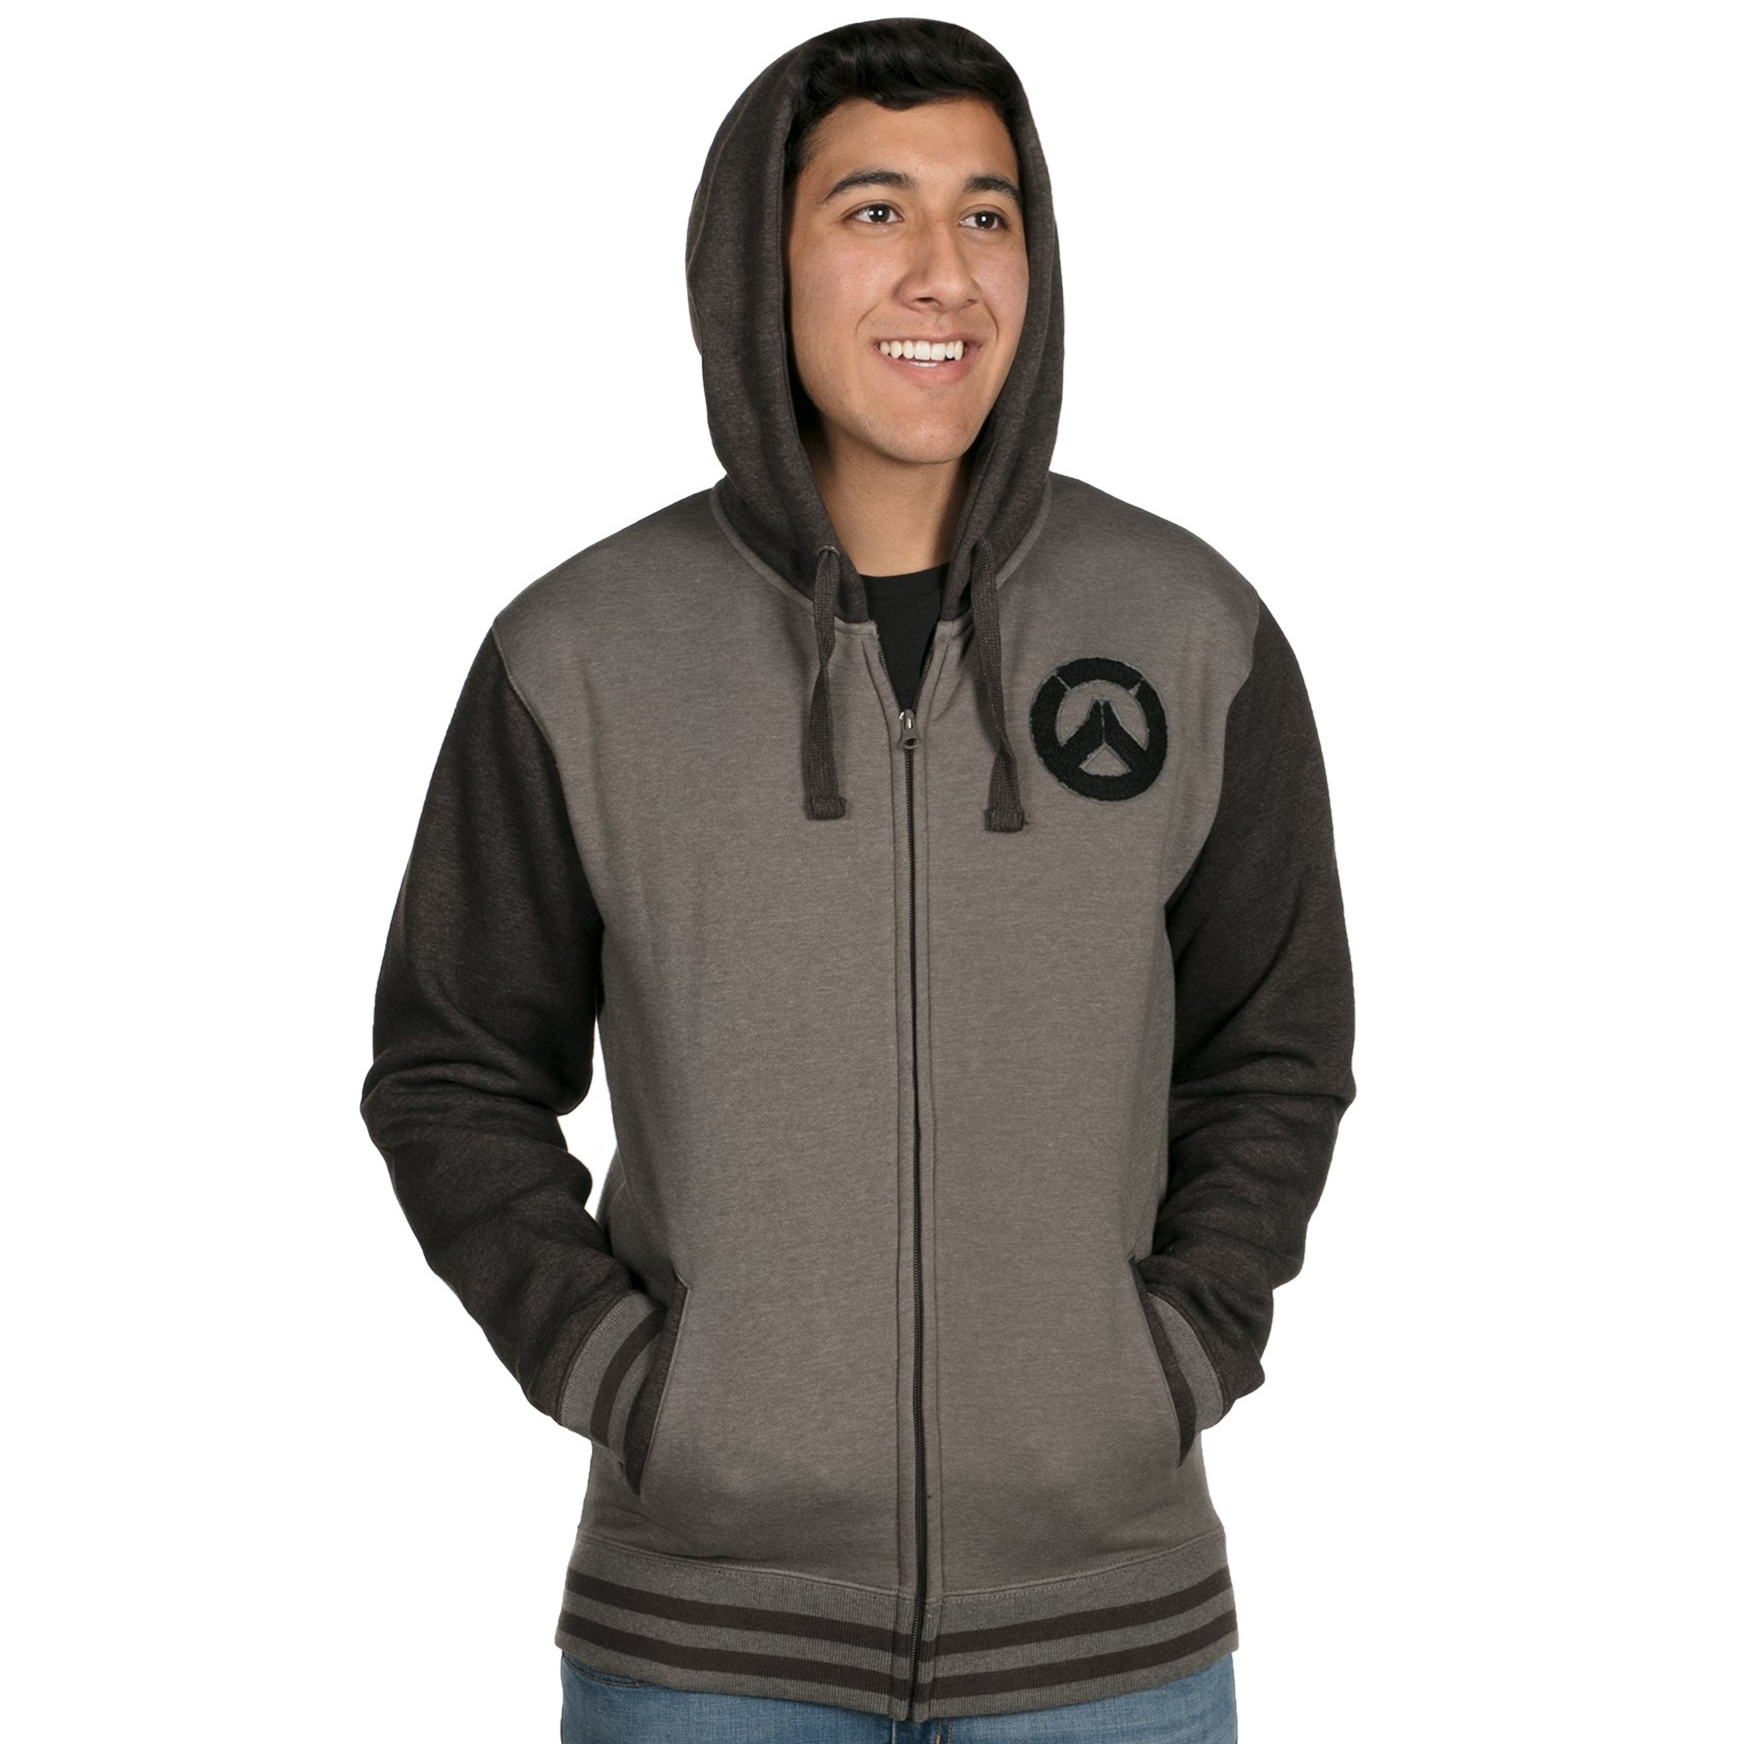 Photograph: Overwatch Founding Member Hoodie